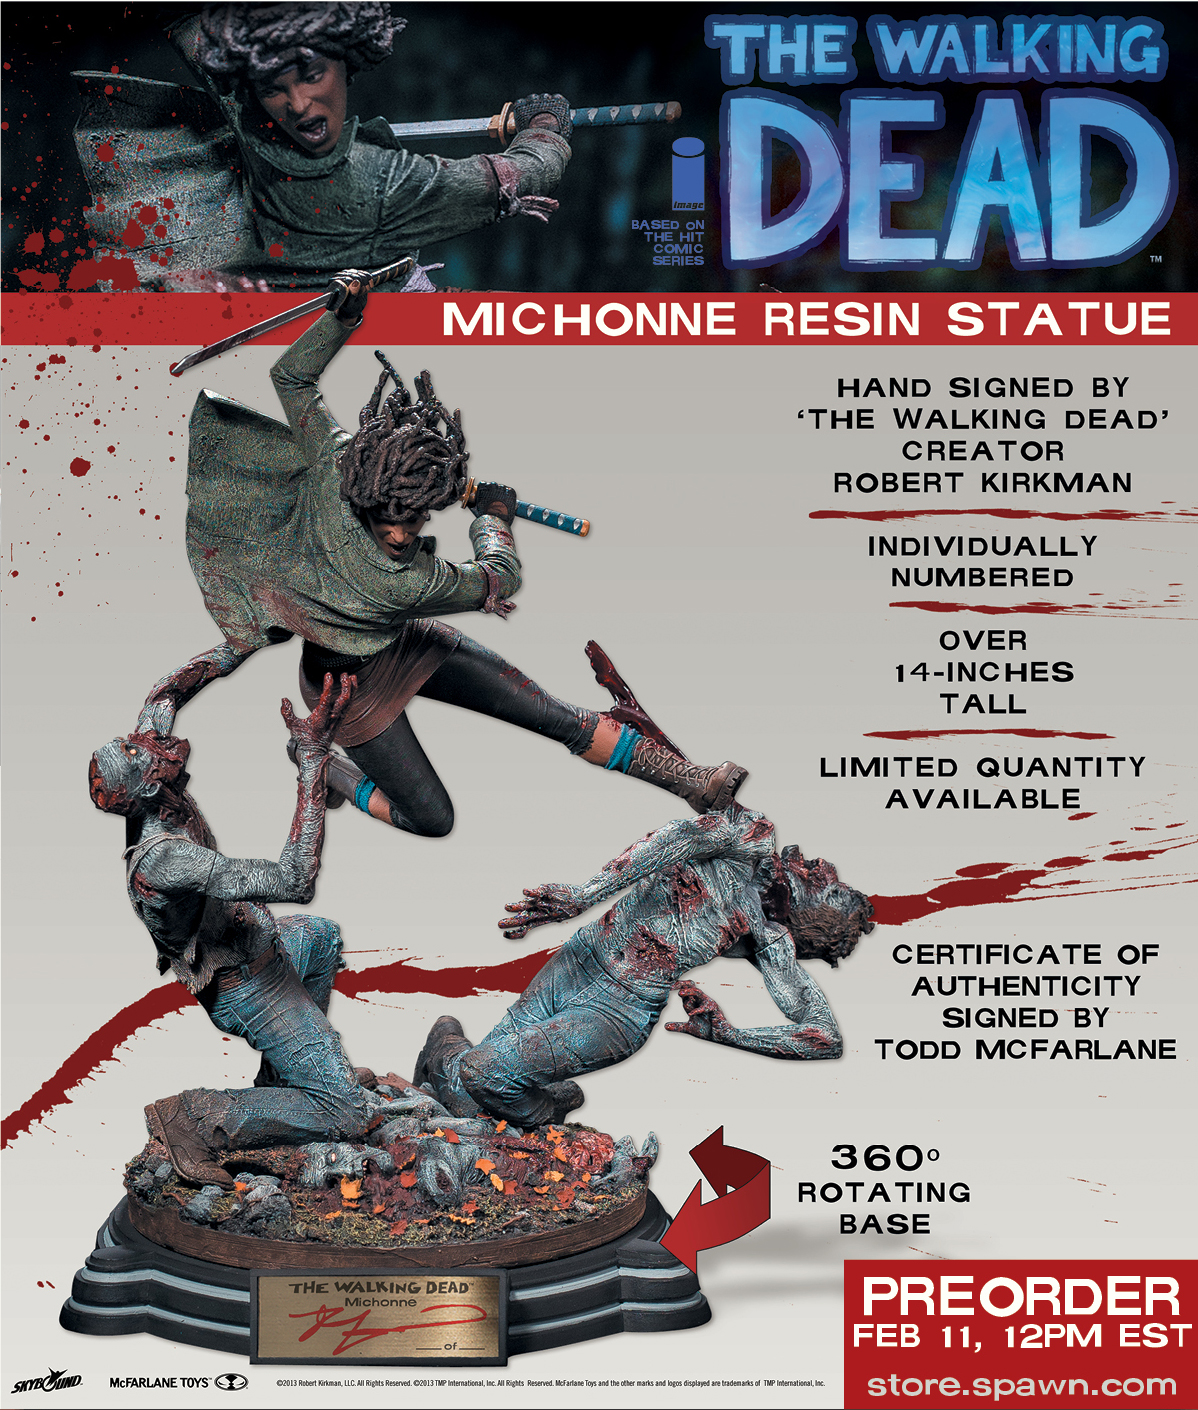 michonne_statue_news_photo_01_cl